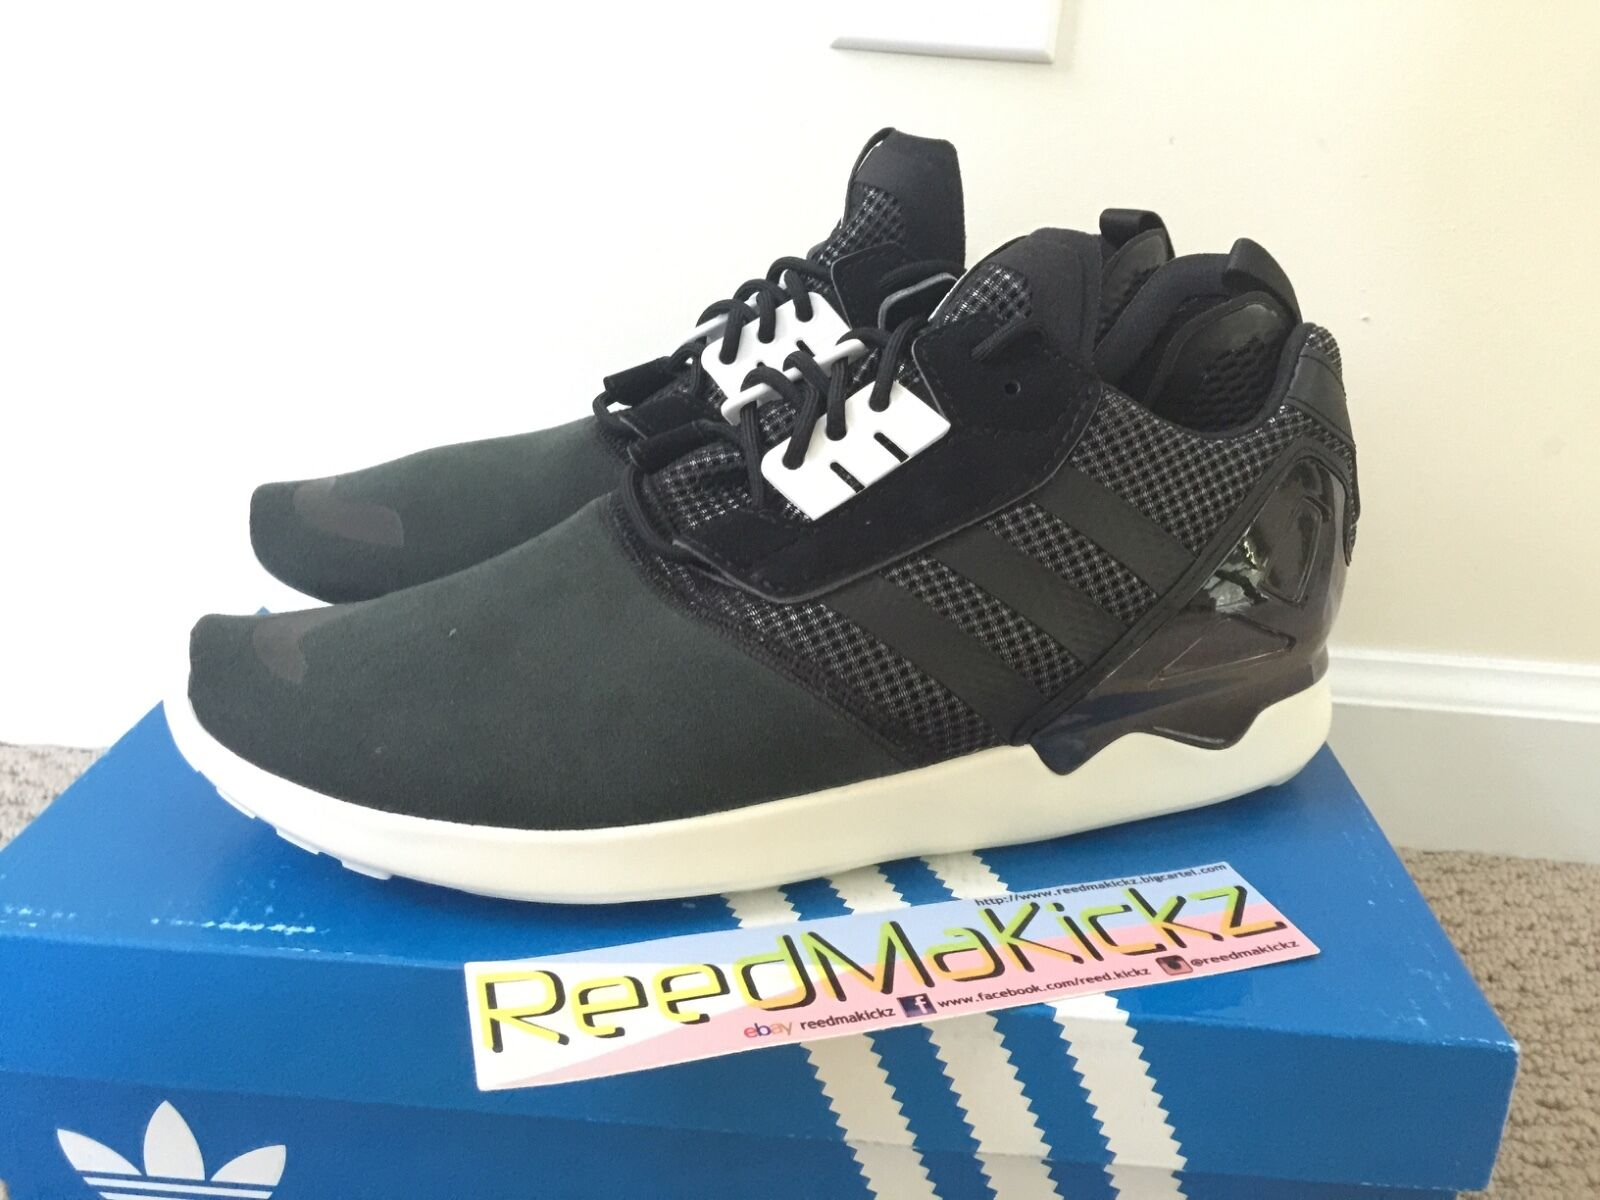 Adidas 8000 ZX 8000 Adidas Boost Black white Mens sizes B26366 a925e6